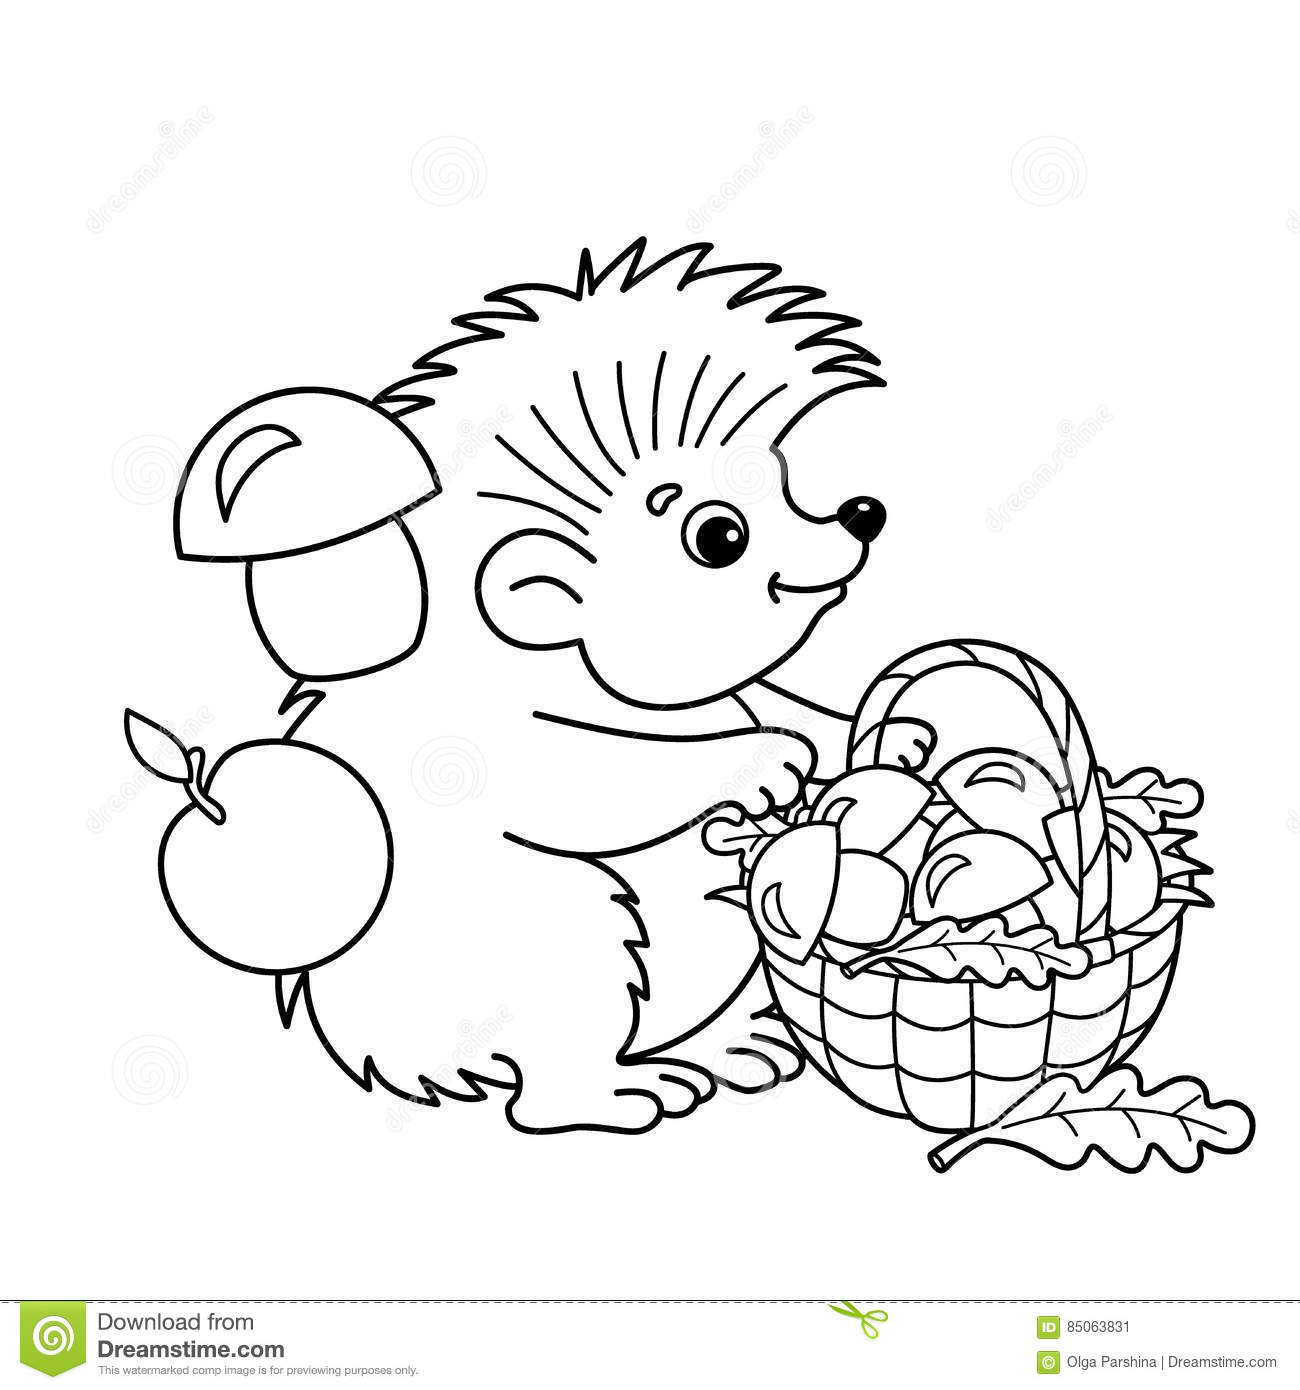 Coloring Page Outline Of Cartoon Hedgehog With Basket Mushrooms